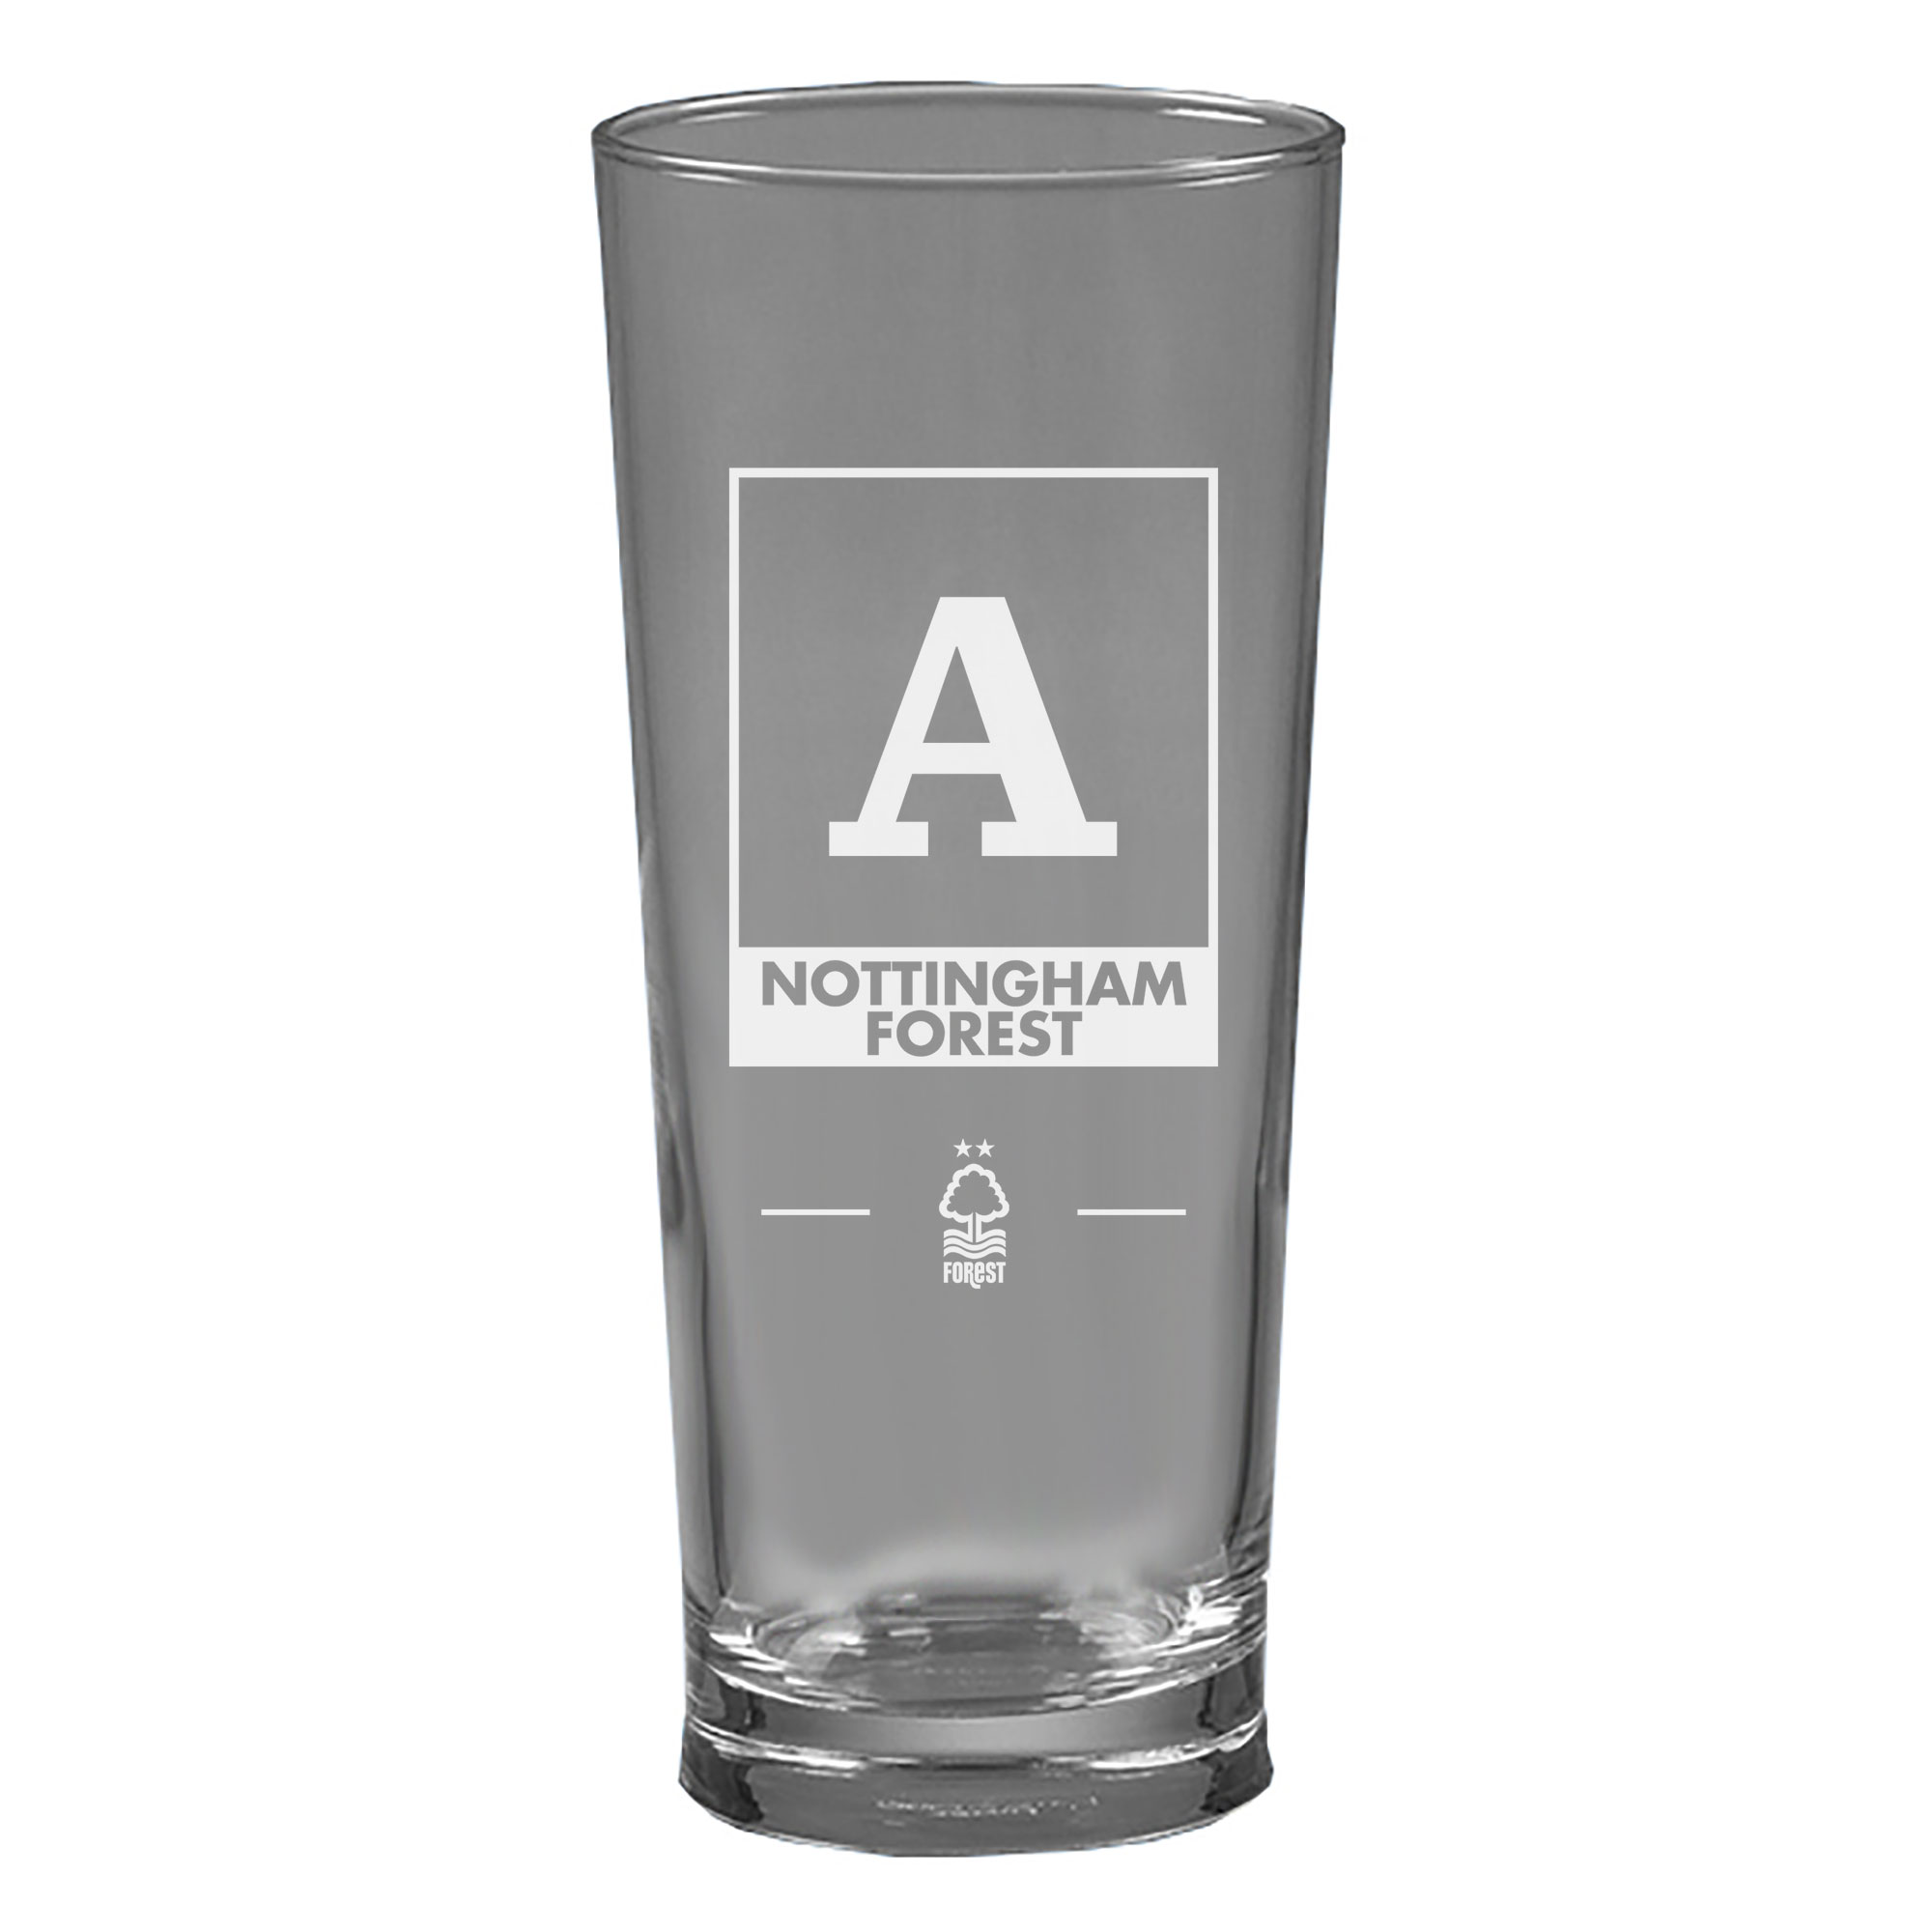 Nottingham Forest FC Monogram Straight Sided Beer Glass